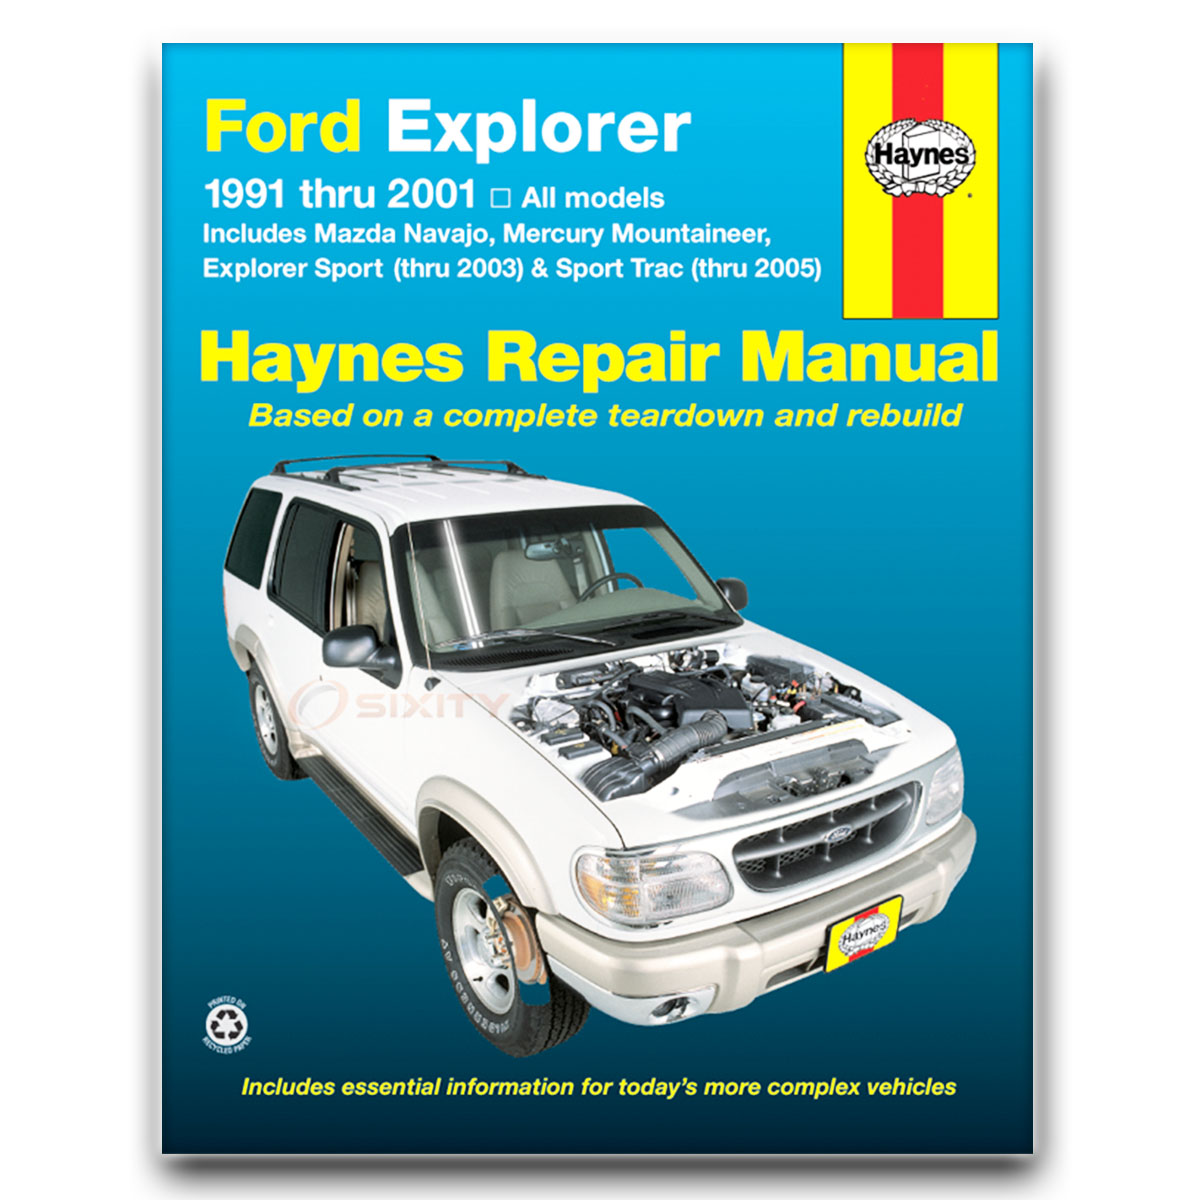 Haynes Repair Manual 36024 for Ford Explorer Mazda Navajo 91-01 Mercury vw